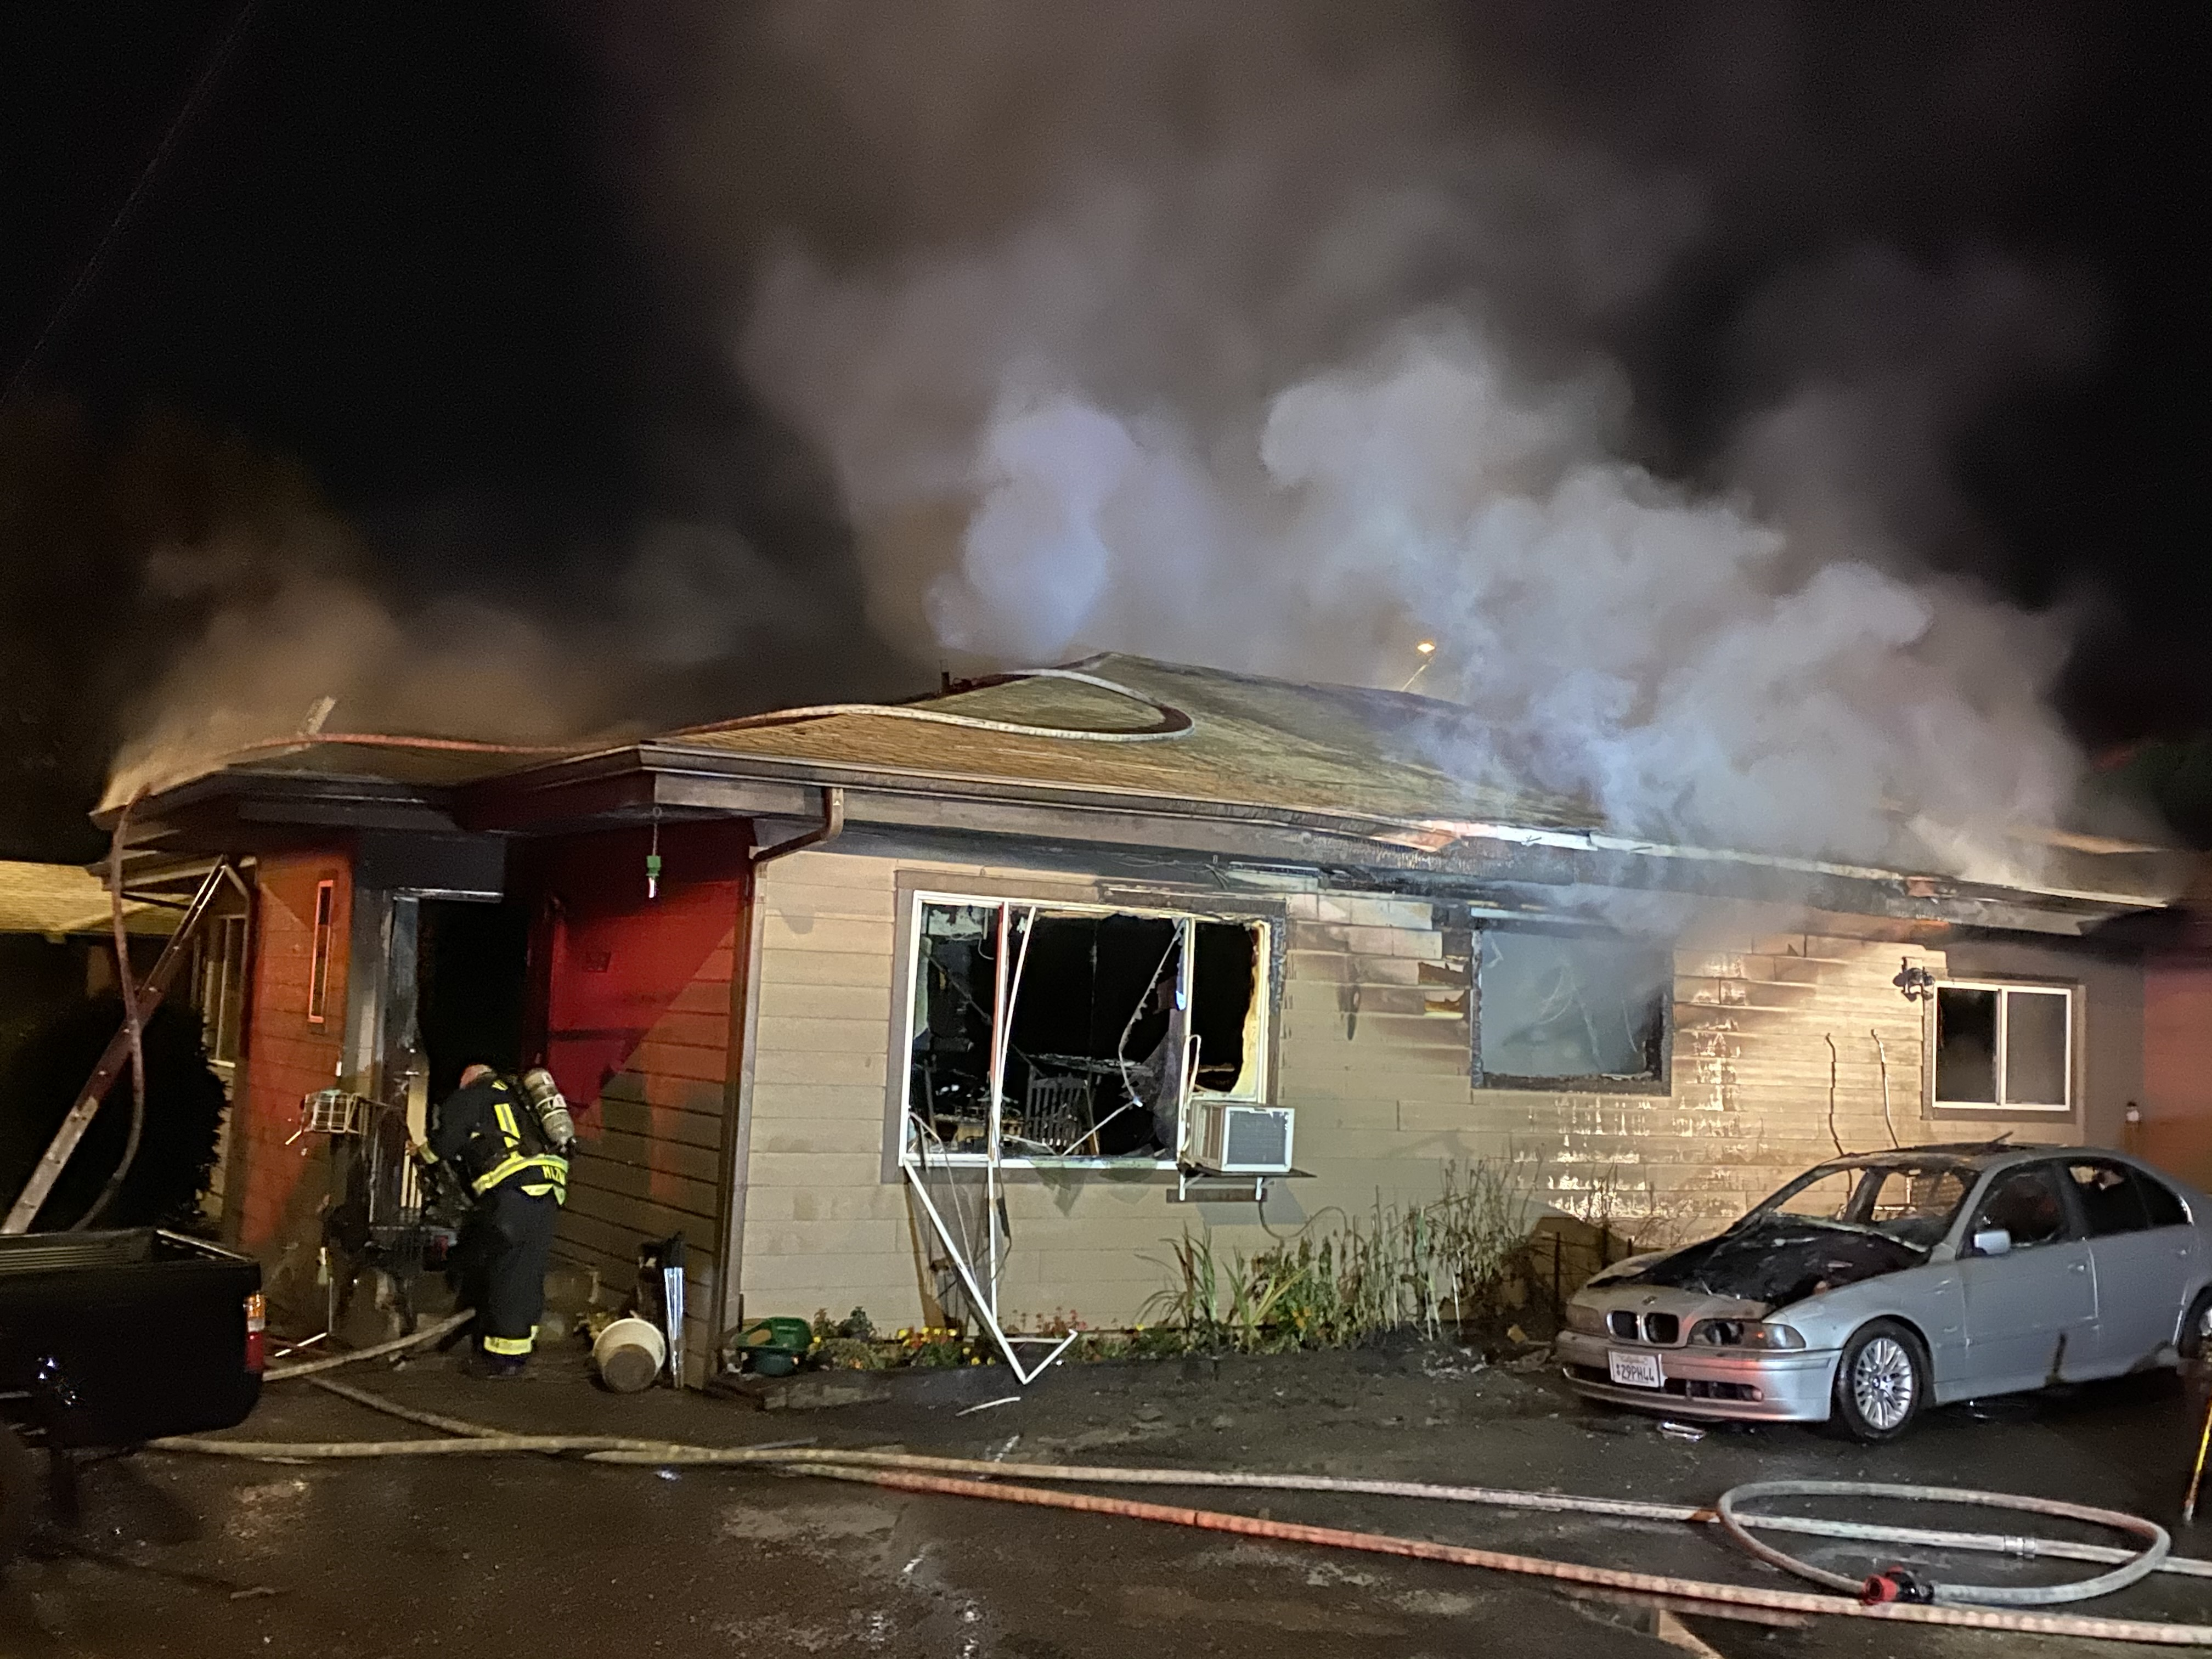 Seven people displaced after apartment fire in Hazel Dell (Courtesy: Clark County Fire)